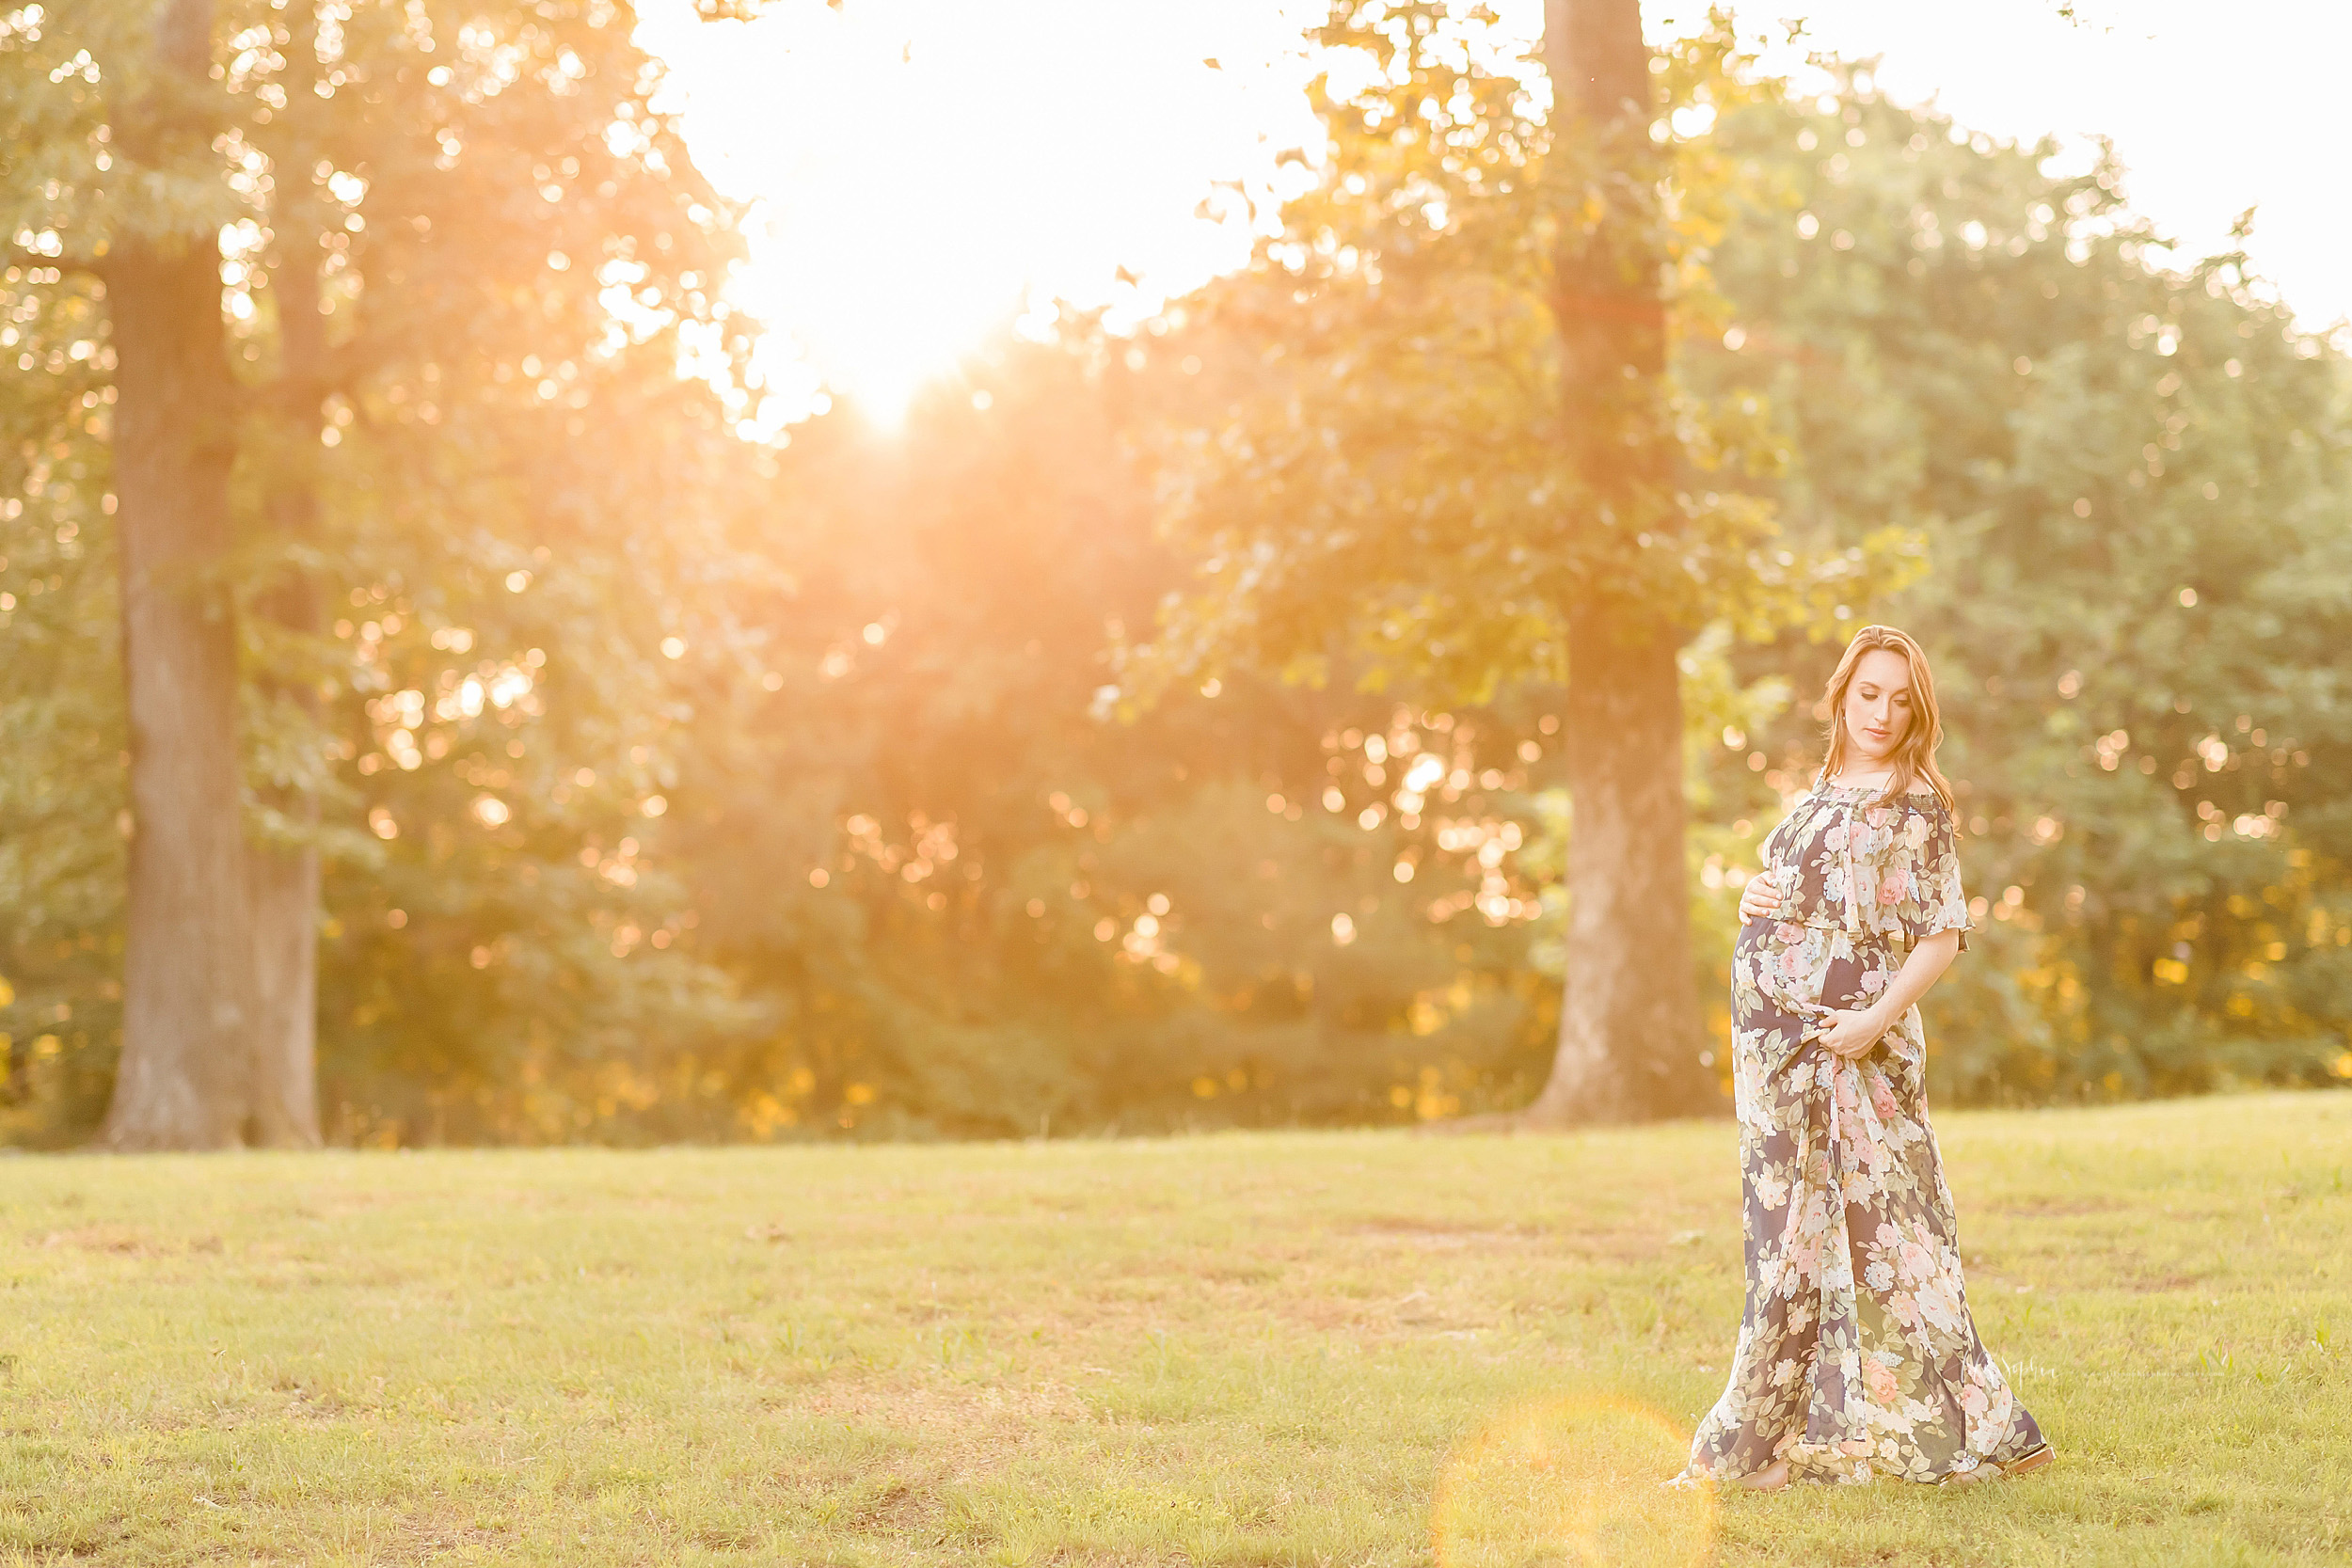 atlanta-smyrna-decatur-sandy-springs-buckhead-virginia-highlands-west-end-decatur-lily-sophia-photography-park-outside-sunset-dogs-couples-maternity-photo-session-expecting-baby-girl_1388.jpg